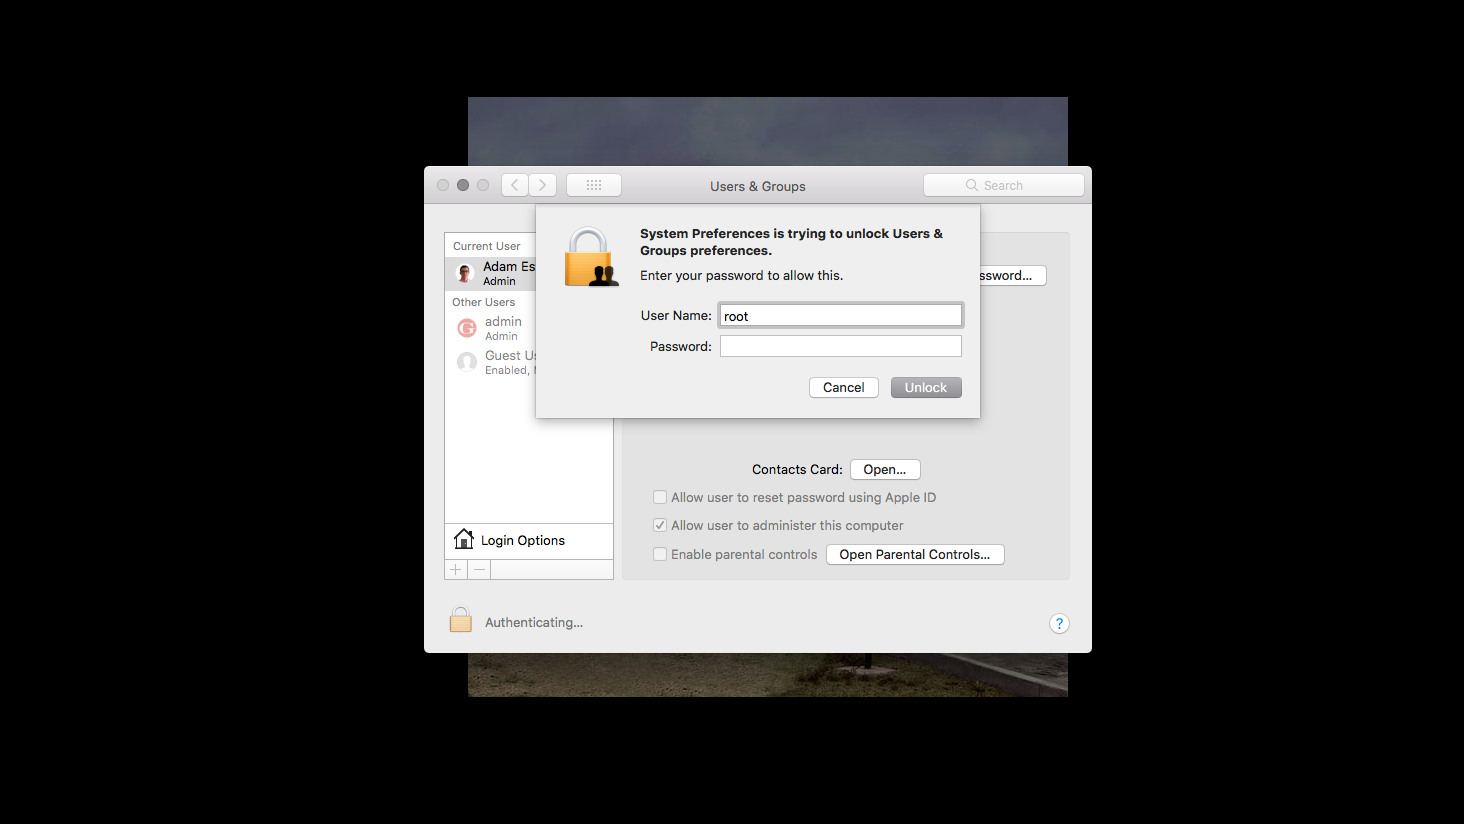 MacOS High Sierra bug allows full admin access without a password